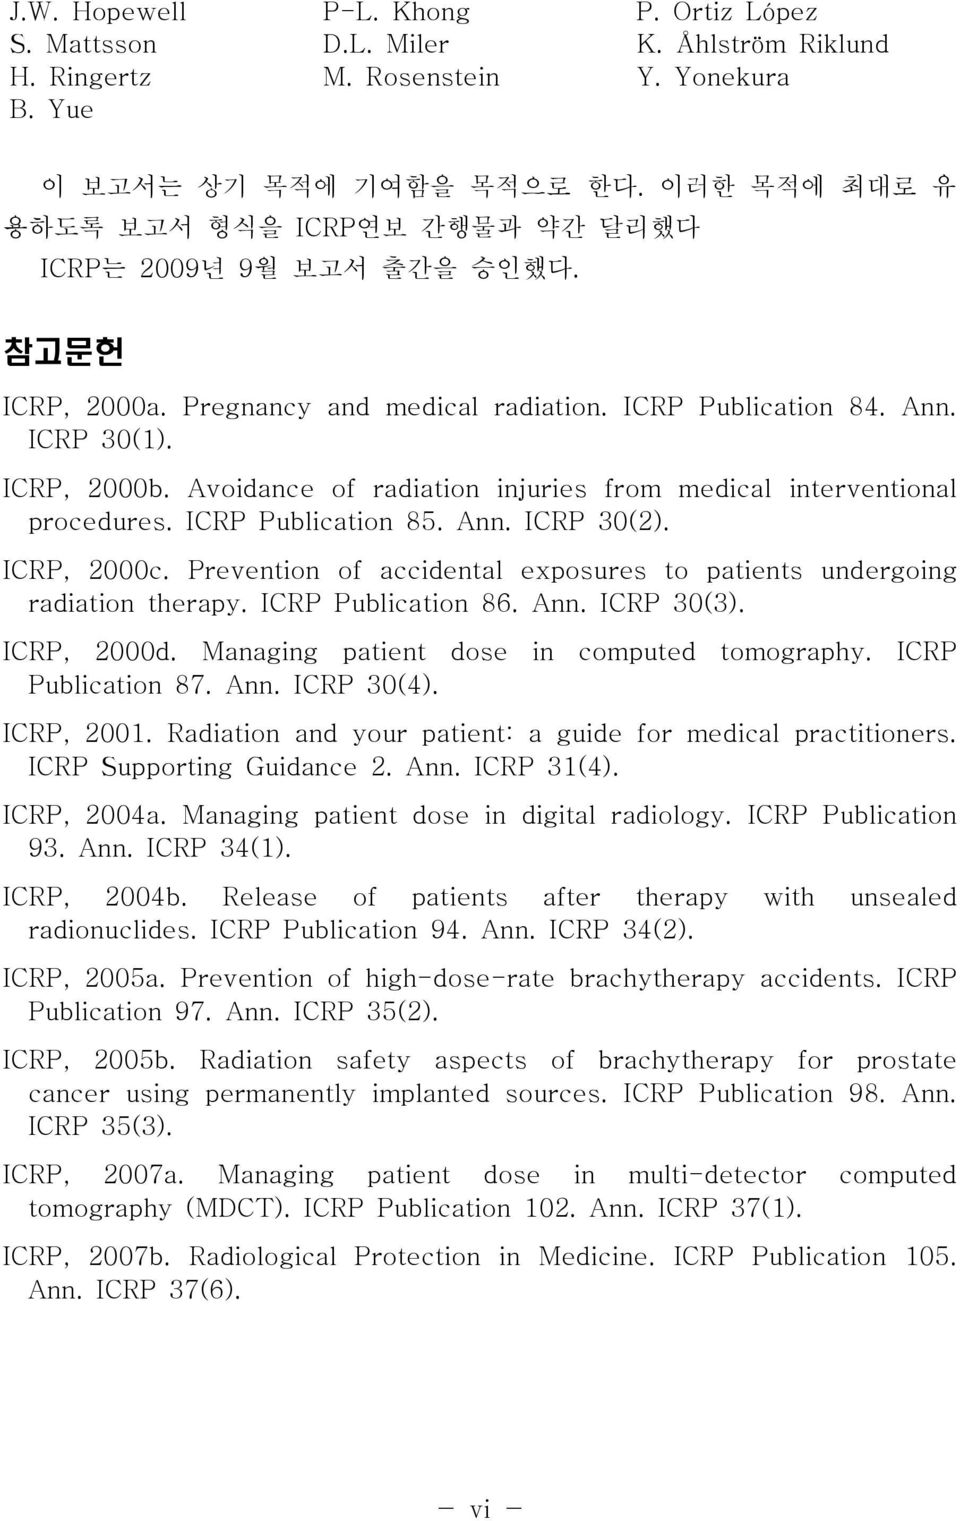 Avoidance of radiation injuries from medical interventional procedures. ICRP Publication 85. Ann. ICRP 30(2). ICRP, 2000c. Prevention of accidental exposures to patients undergoing radiation therapy.